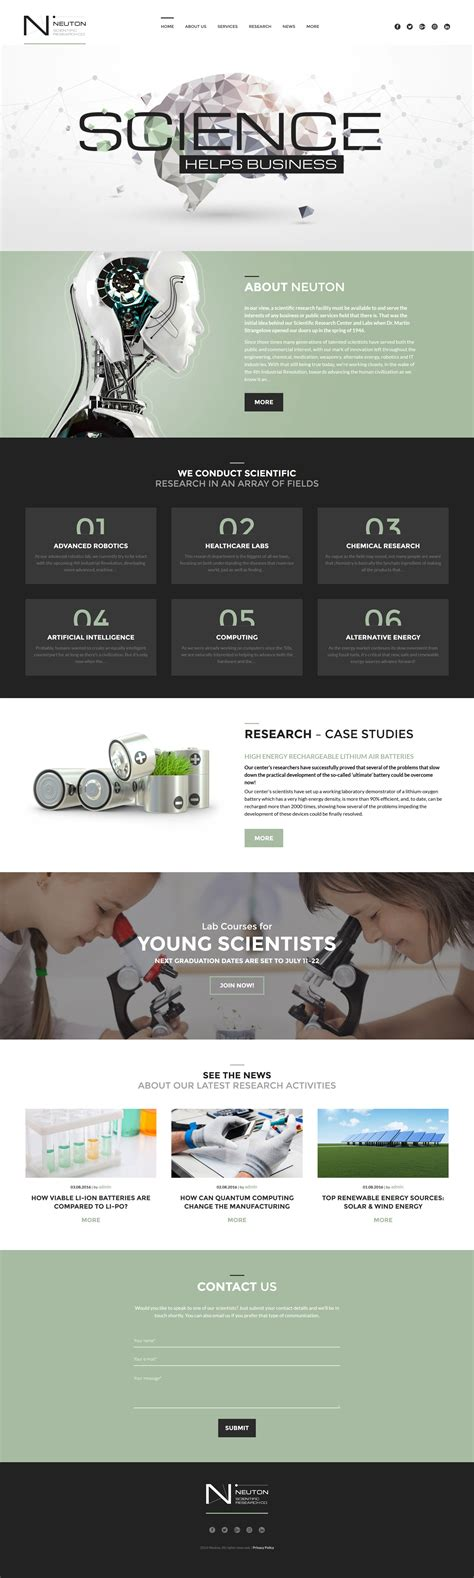 science lab templates archives zemez wordpress